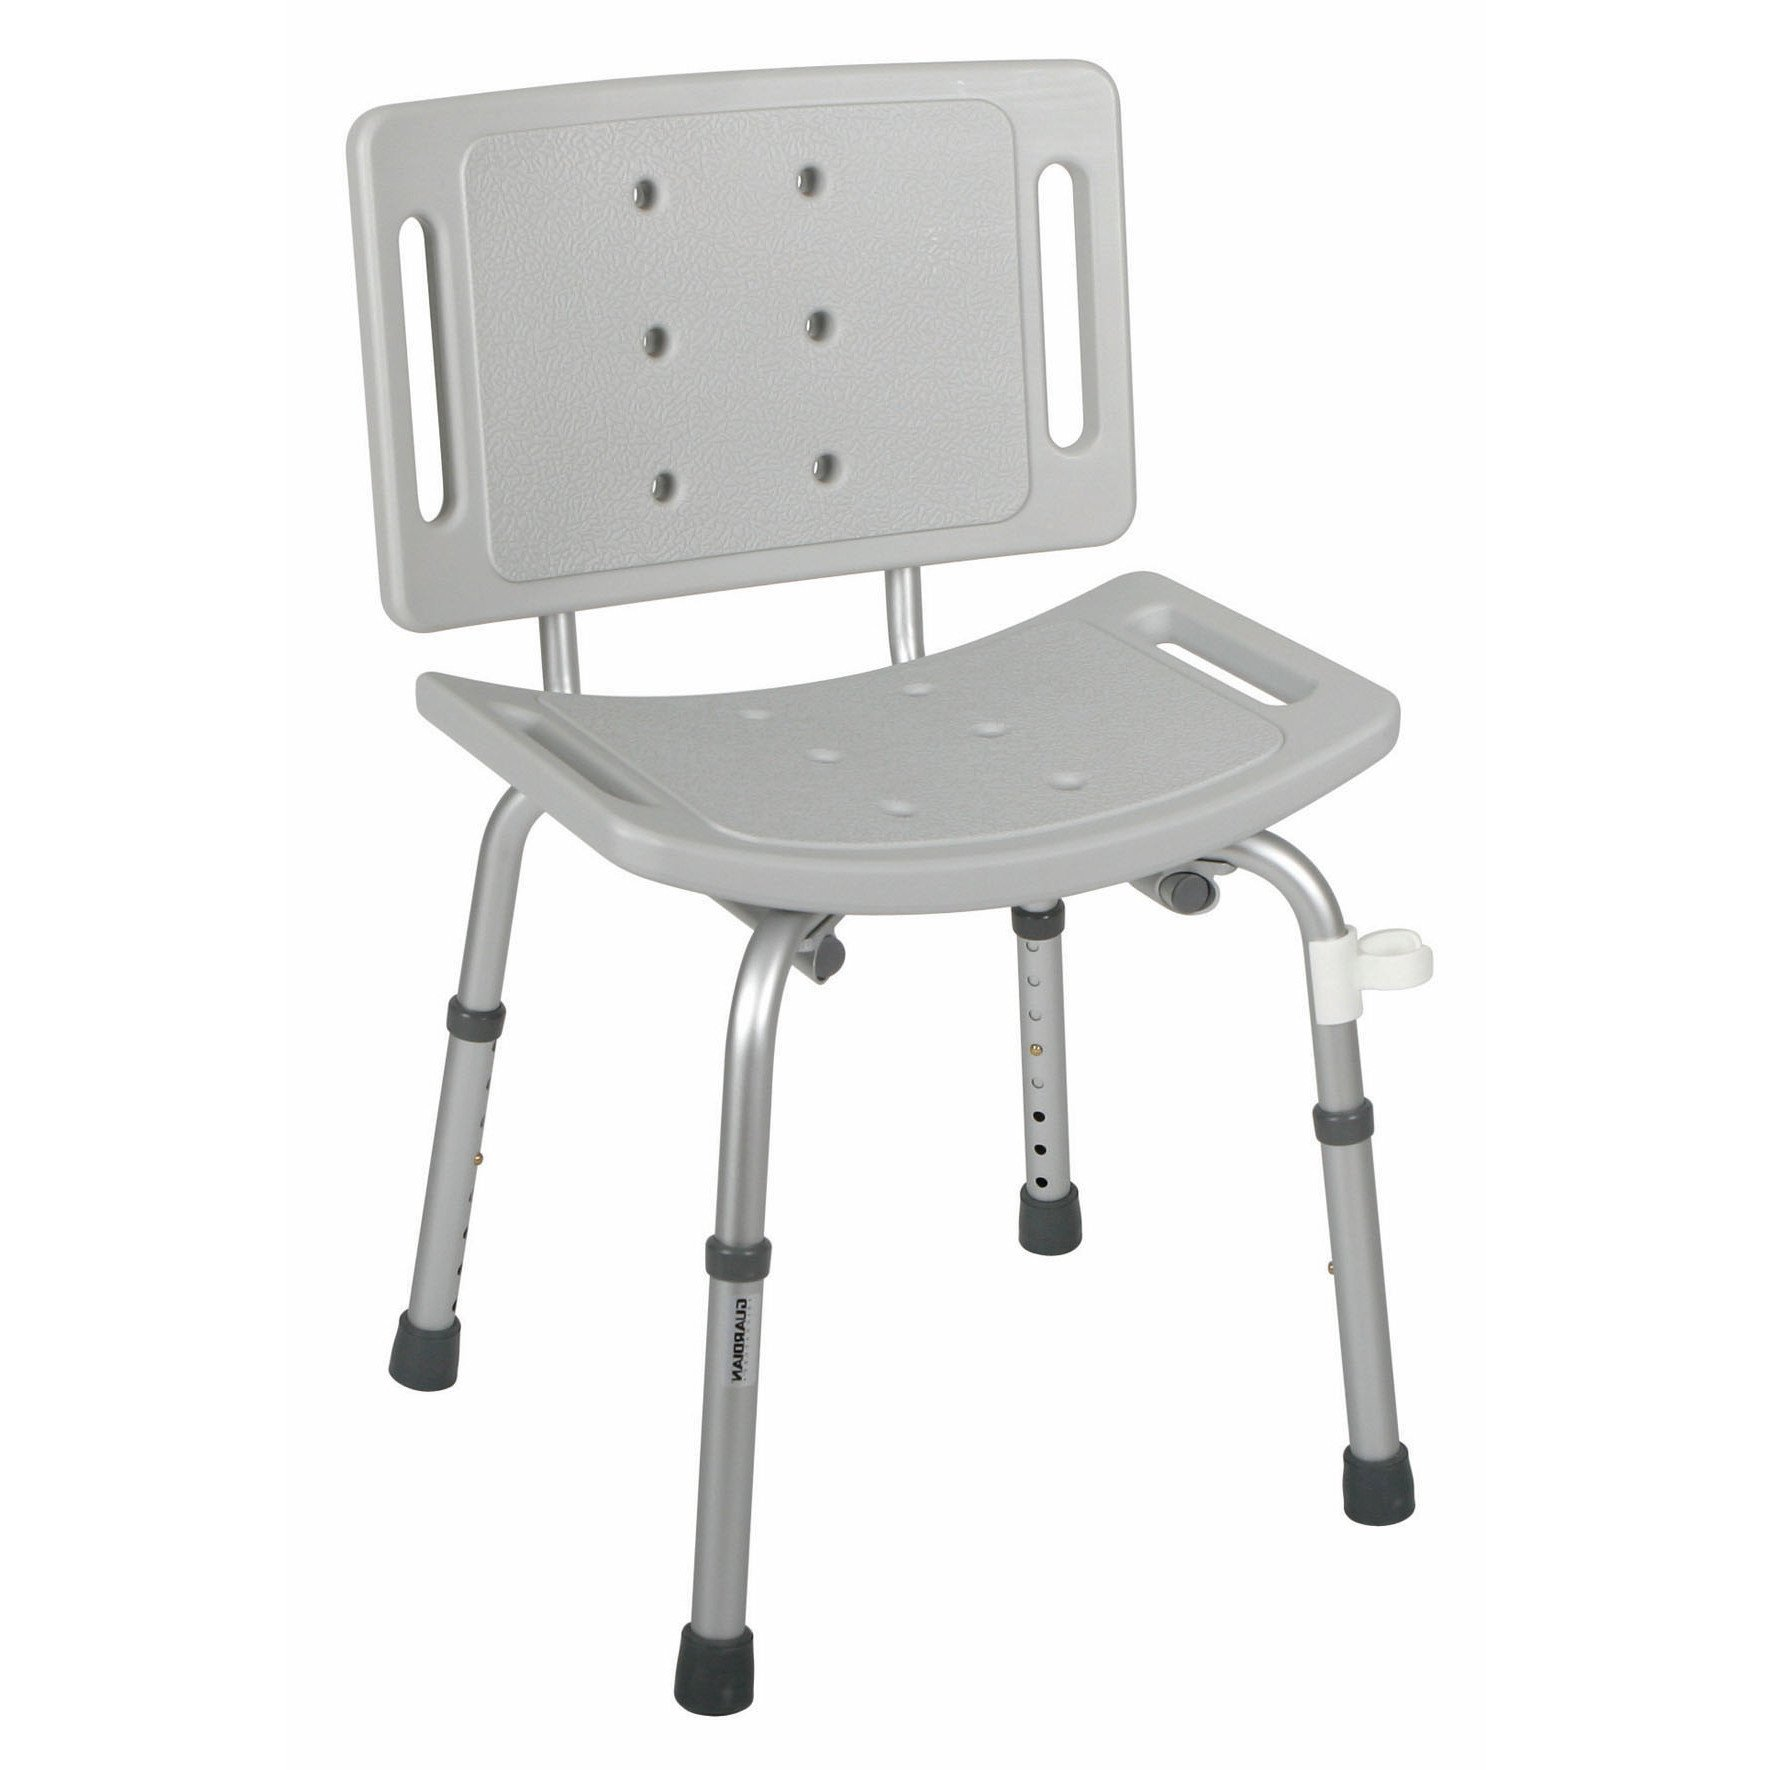 horseshoe space aperture chair with in products ex tip shower image gas demo tilt sale seat